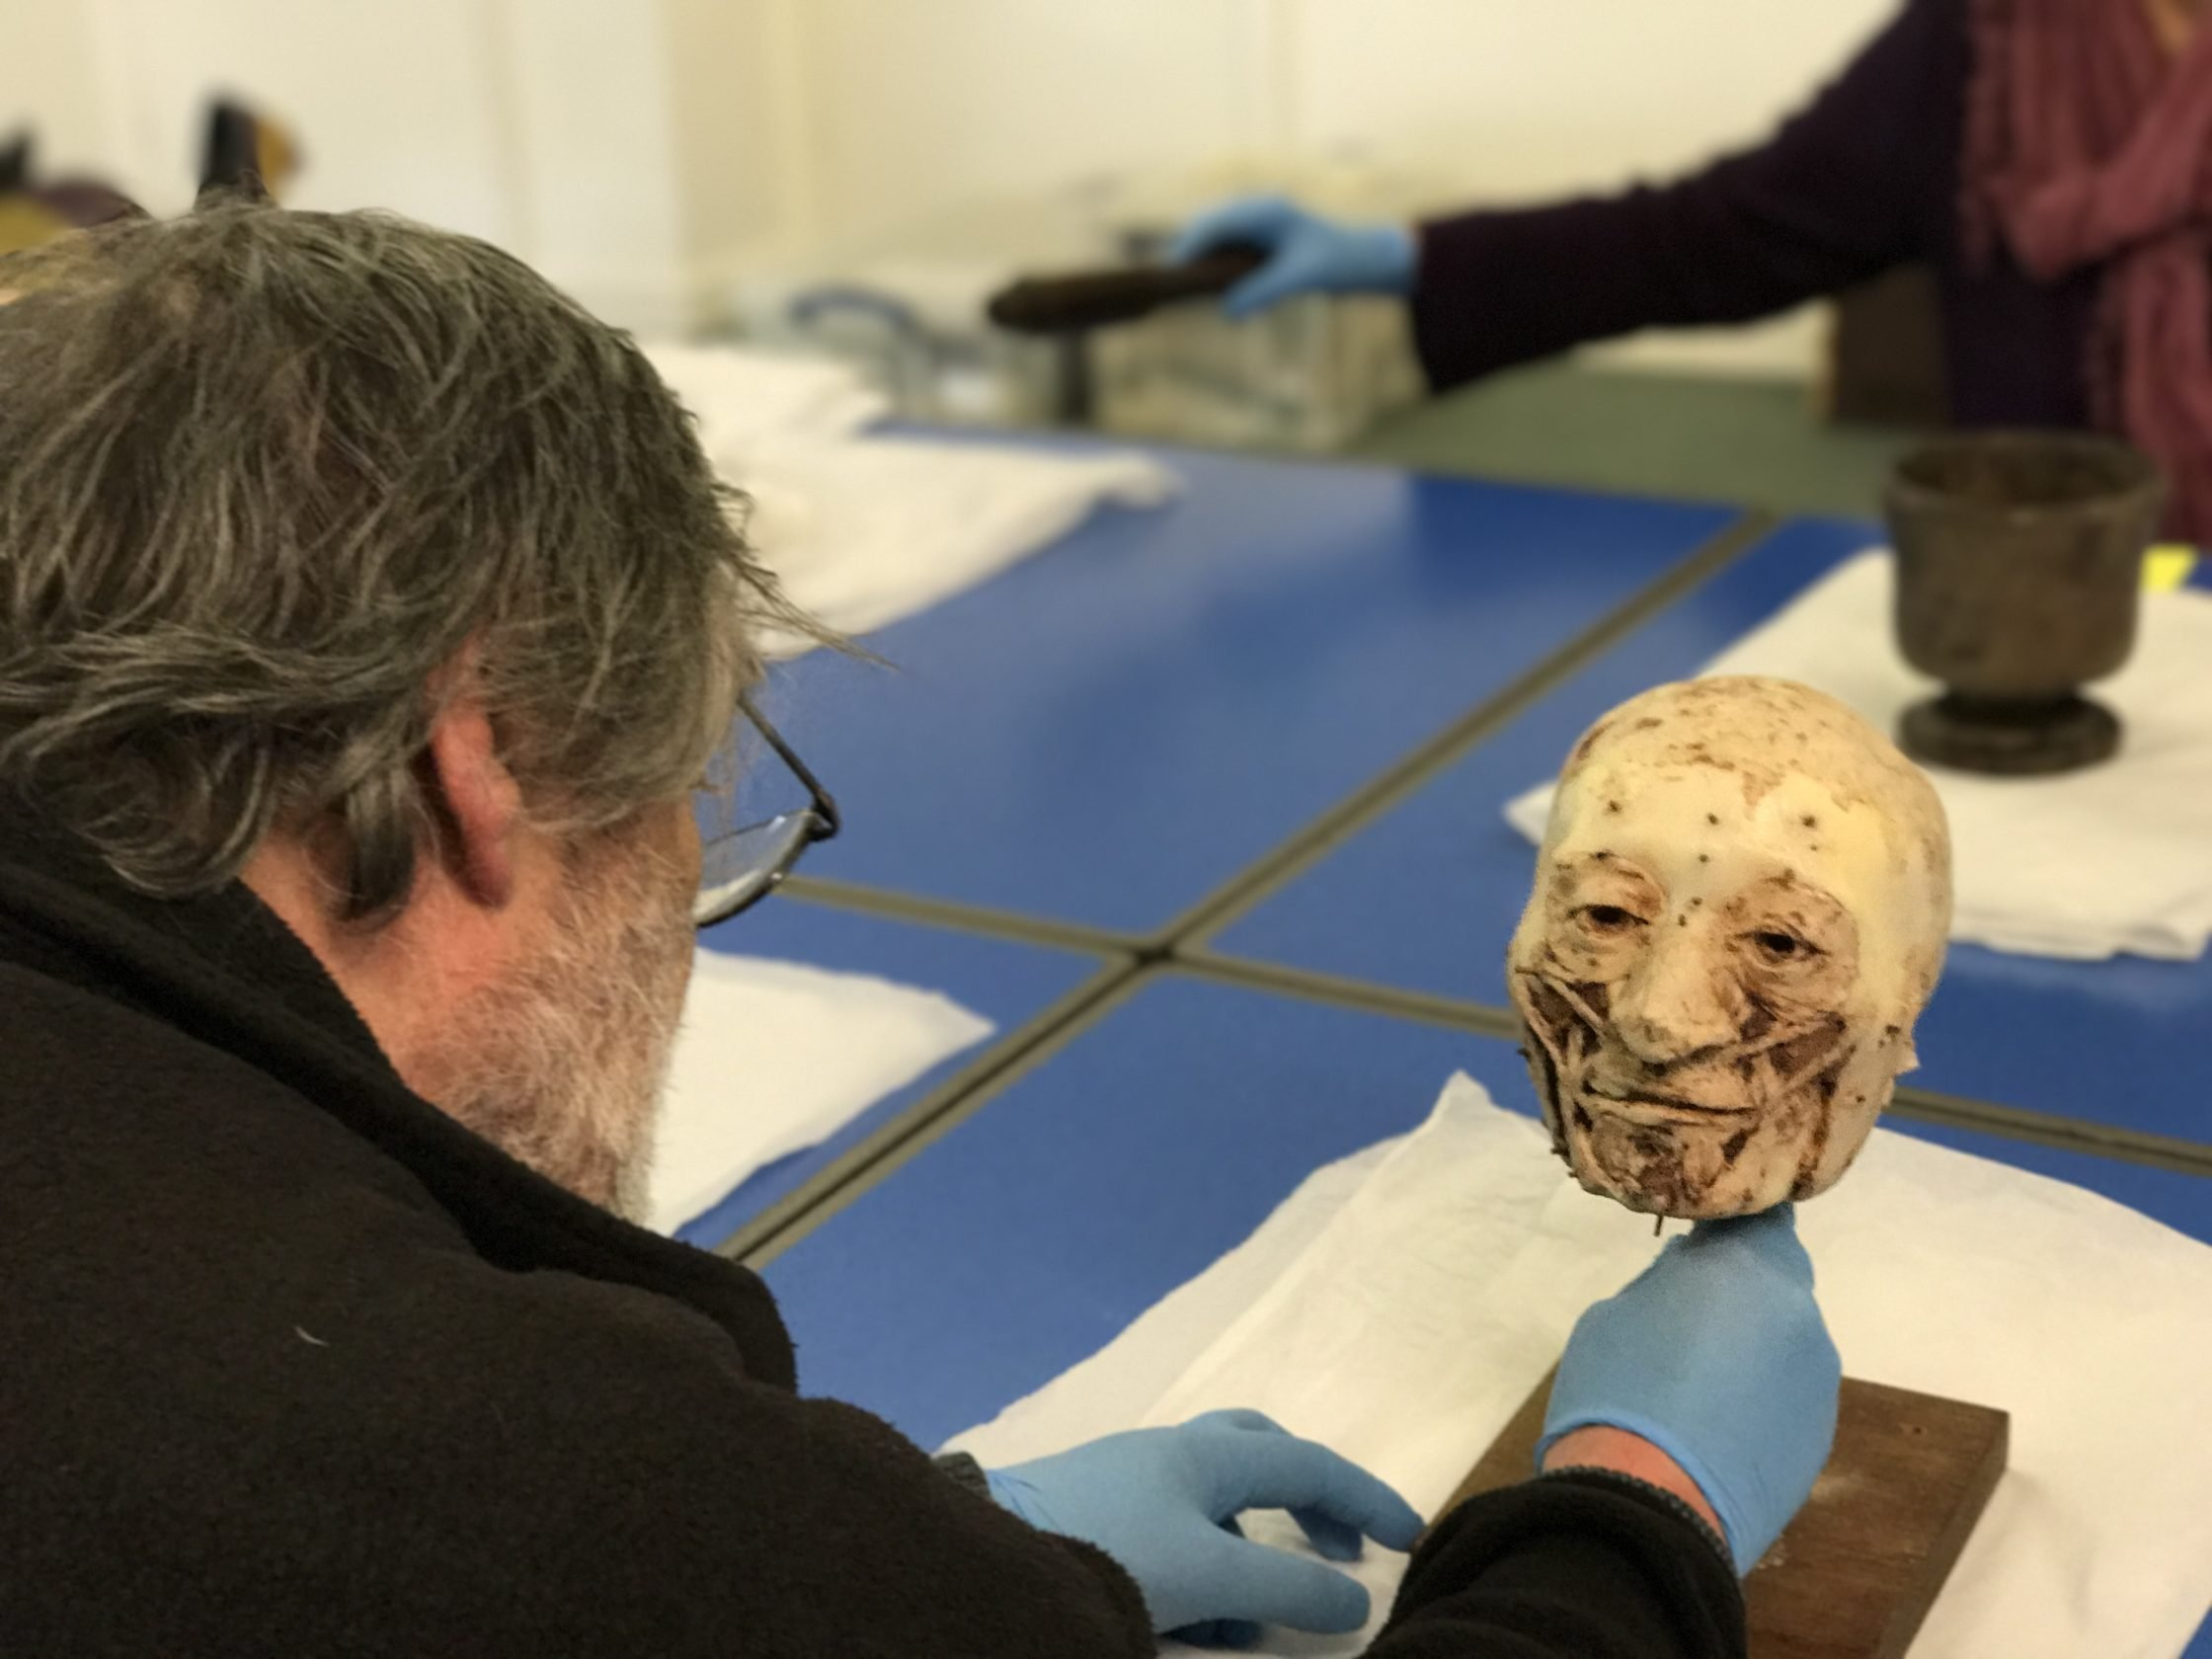 Man with greying hair wearing a blue glove beholding a wax figure of a man's face used as a mould to recreate the human face of a now deceased person in the form of an Egyptian mummy